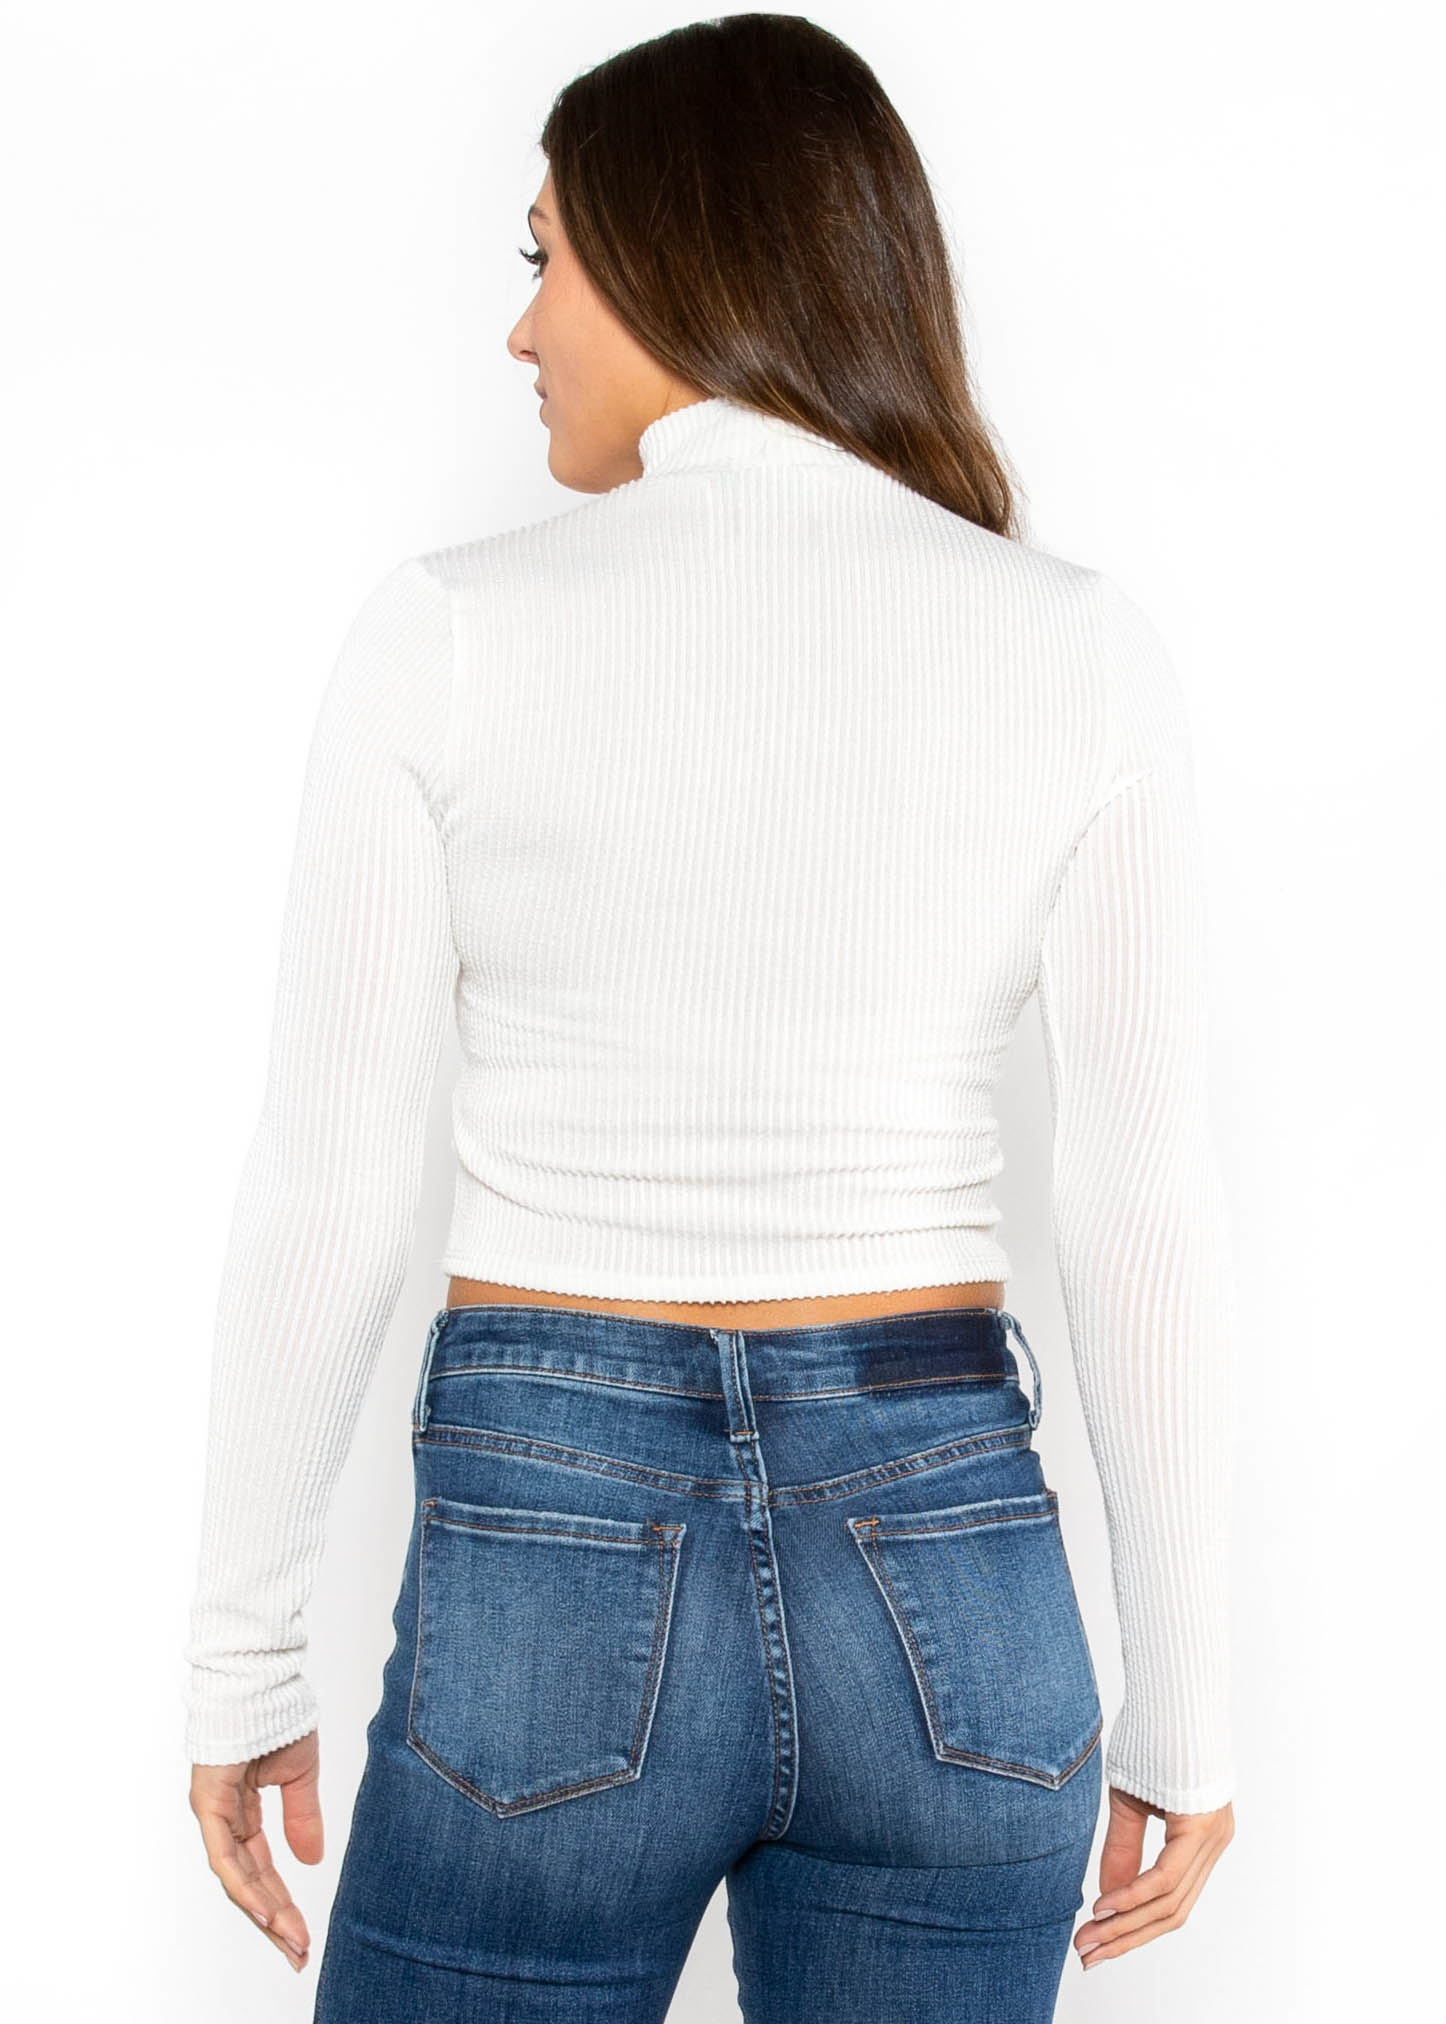 YOU AND I MOCK NECK CROP TOP